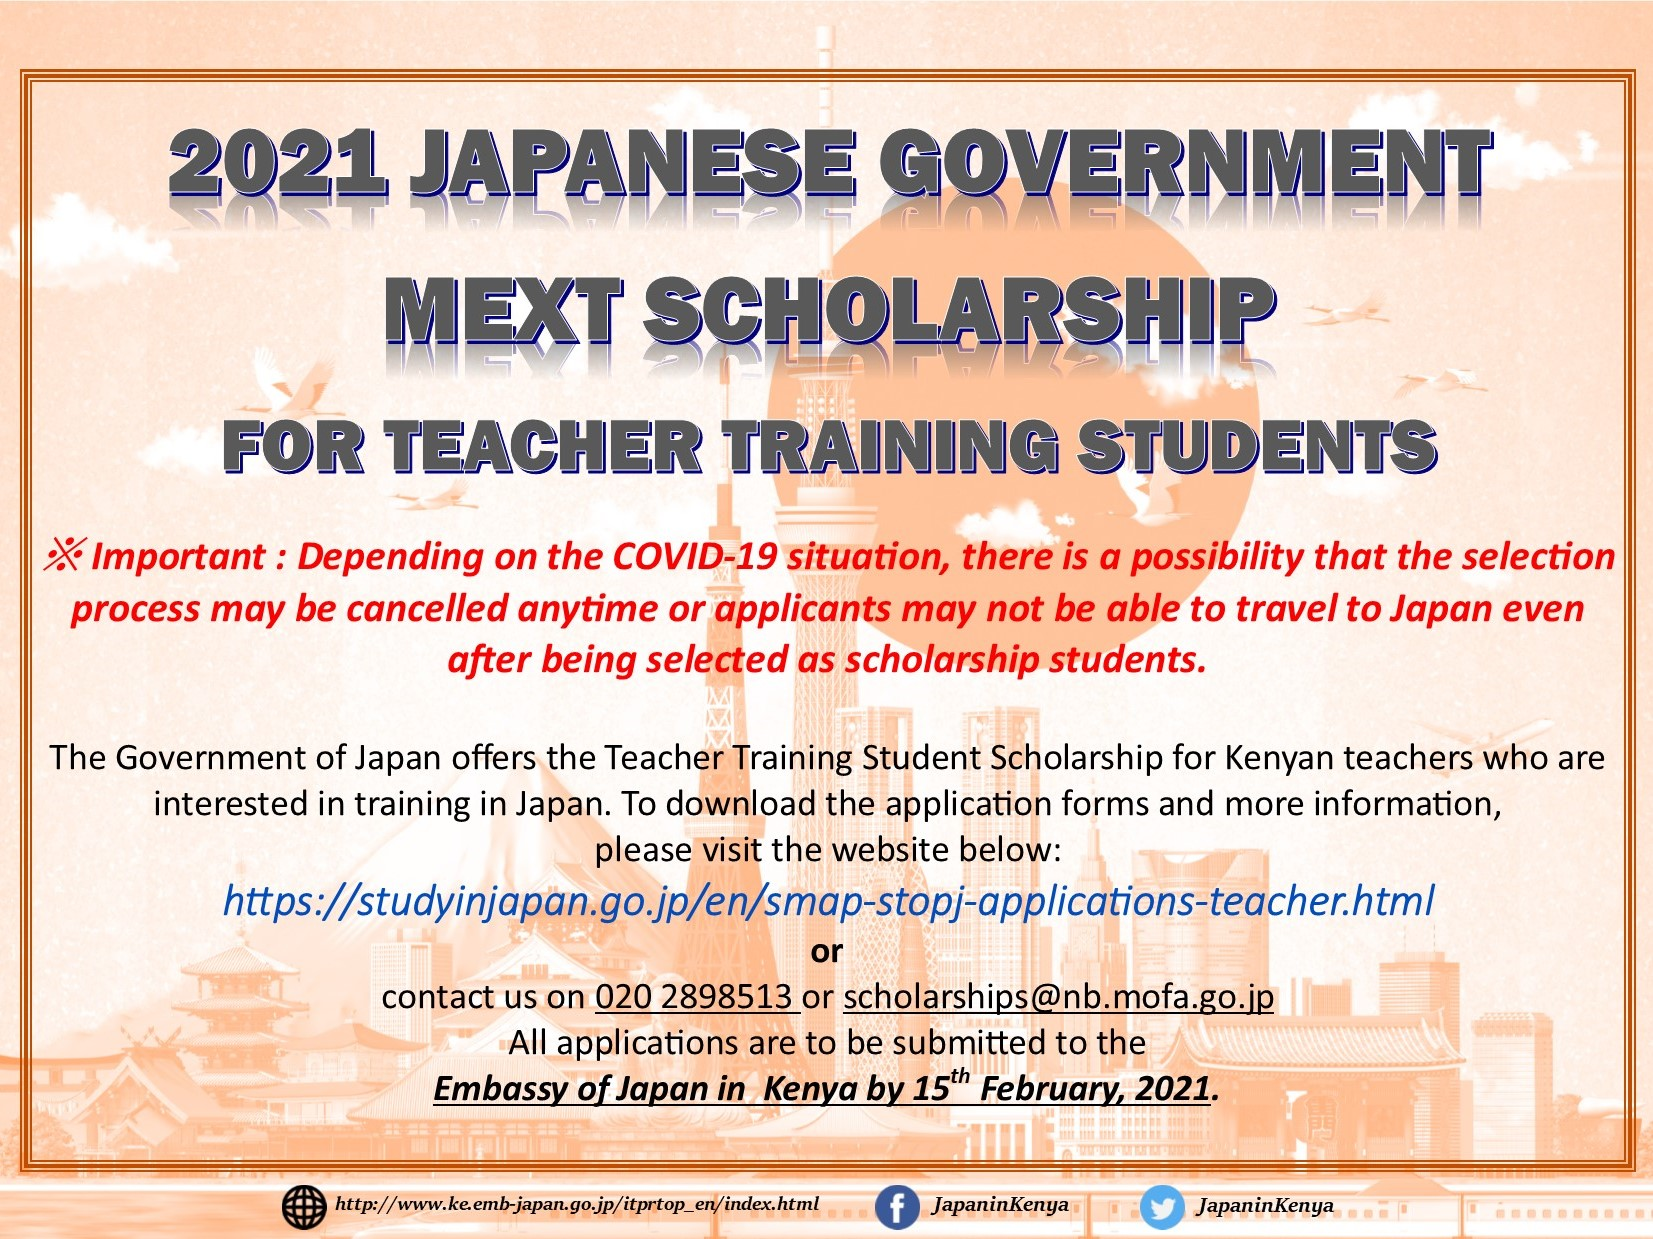 JAPANESE GOVERNMENT MEXT SCHOLARSHIP FOR 2021 TEACHER TRAINING STUDENTS